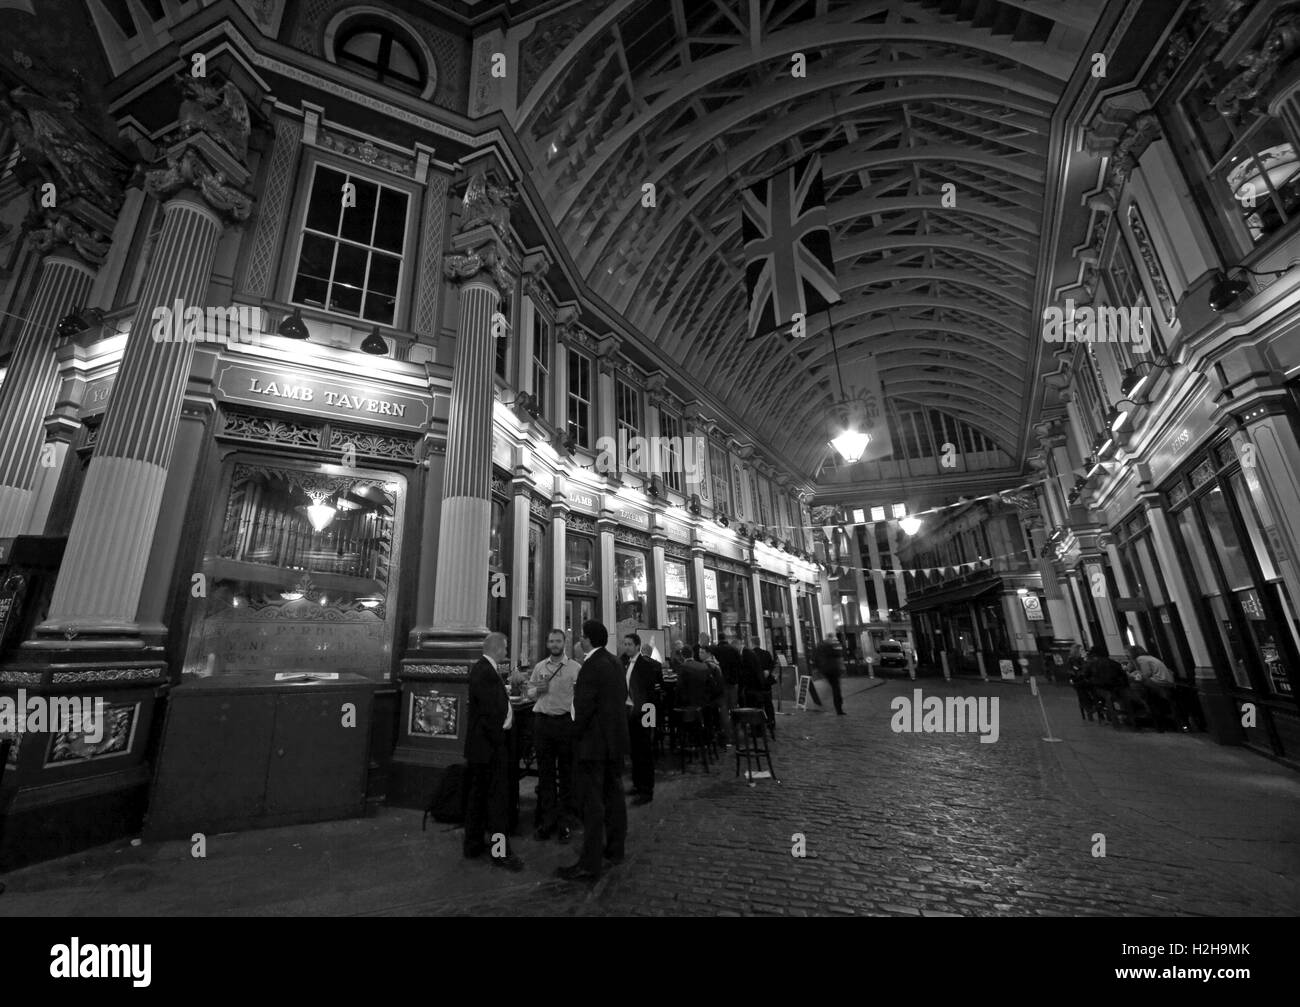 Evening,nightlife,dusk,covered,historic,pano,landmark,tourist,tourism,site,financial,district,area,bank,banking,pedestrian,passageway,passages,vendors,cheesemongers,butchers,florists,bar,pub,bars,pubs,ornate,roof,glass,cobbled,cobbles,attraction,Grade,II,Sir Horace Jones,Tourist Attraction,GoTonySmith,@HotpixUK,Tony,Smith,UK,GB,Great,Britain,United,Kingdom,English,British,England,color,colour,panorama,union,flag,jack,BW,black,white,pubs,bars,of,London,classic,tourist,attraction,travel,vacation,Buy Pictures of,Buy Images Of,Images of,Stock Images,Tony Smith,United Kingdom,Great Britain,British Isles,UnionJack,Union Jack,Pubs Of London,must see